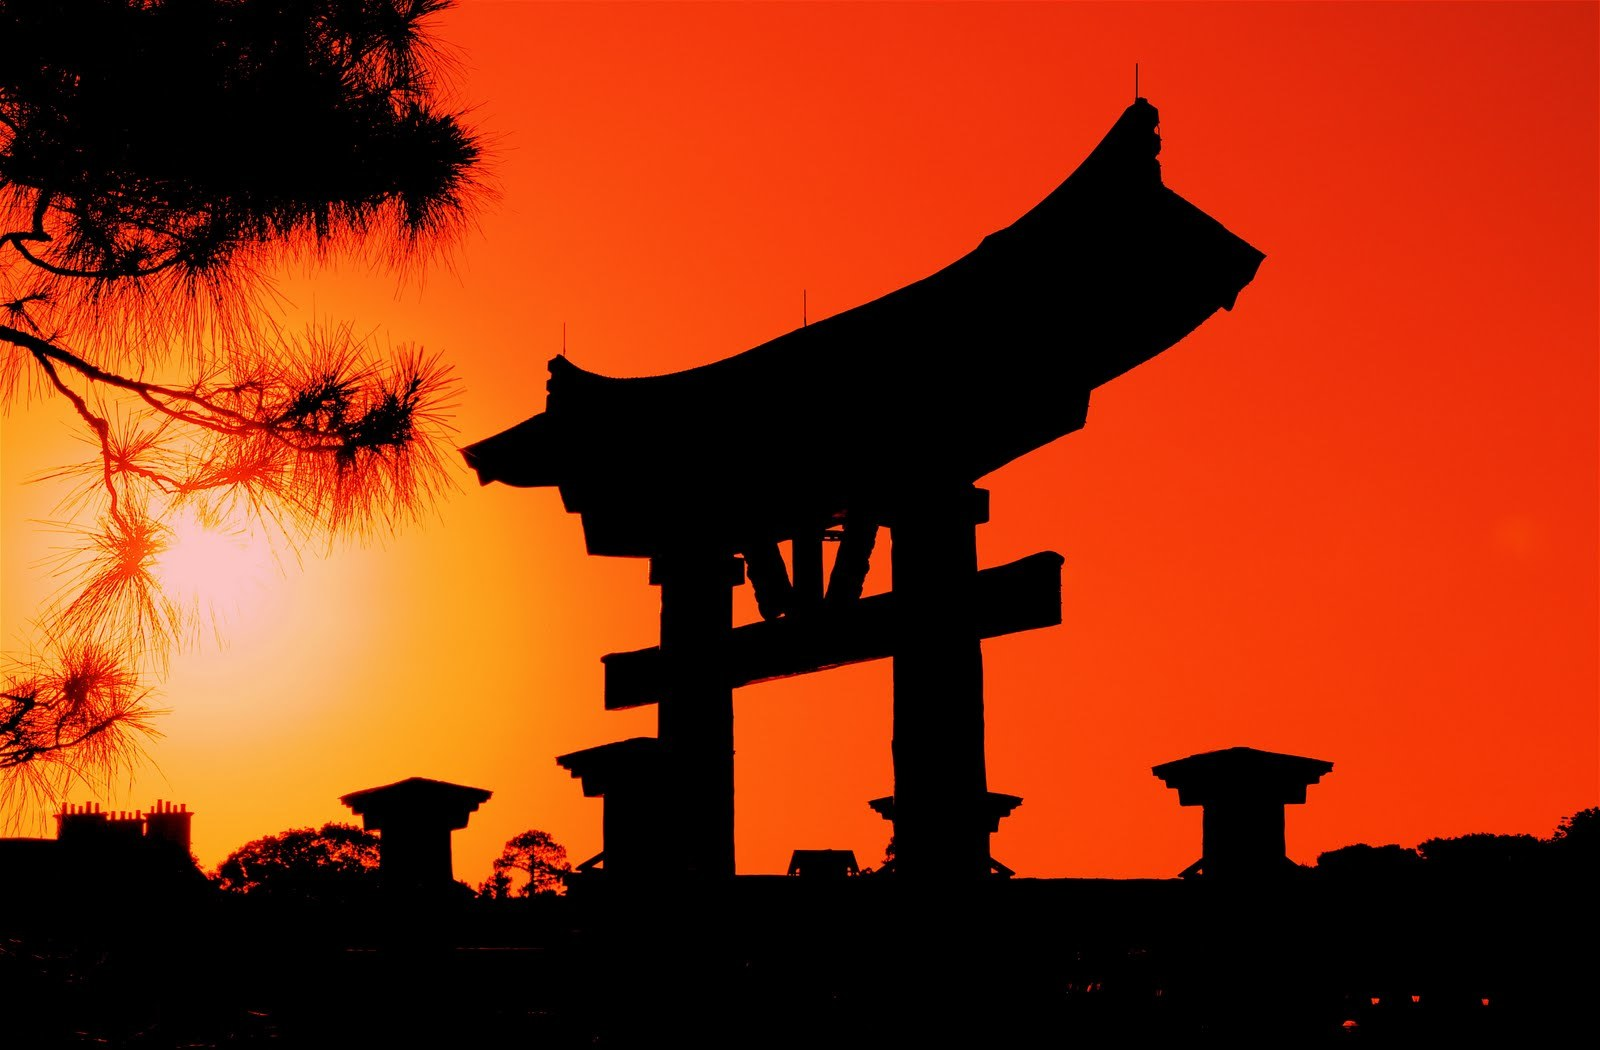 sunset Japan silhouettes torii HD Wallpaper